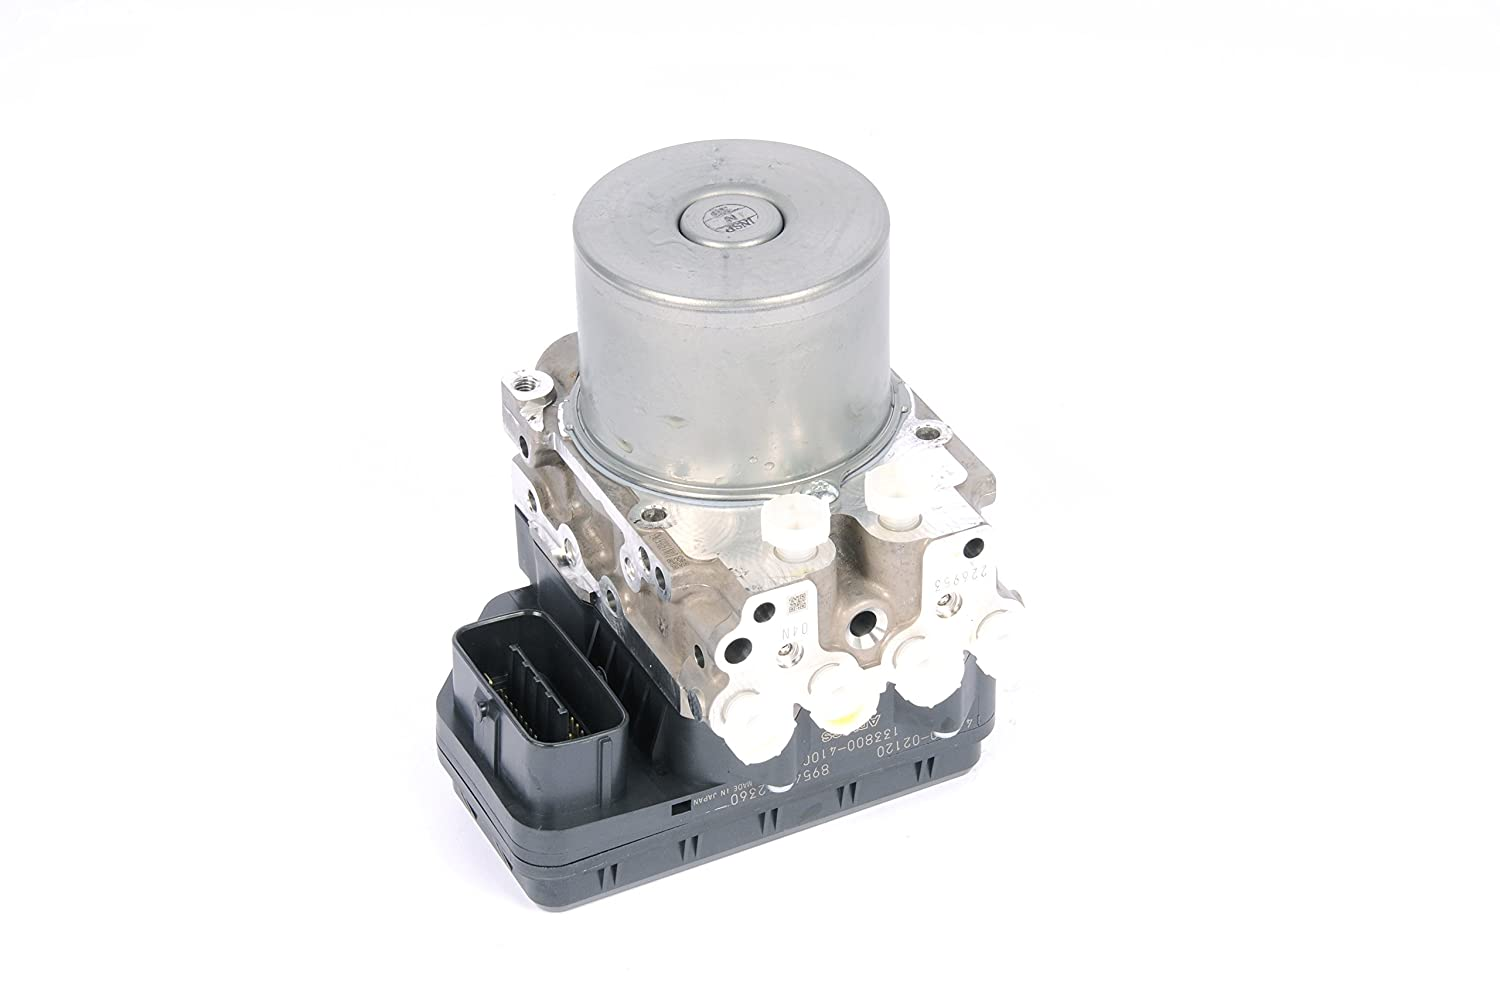 ACDelco 19183781 GM Original Equipment Brake Pressure Modulator Valve Assembly with Electronic Brake Control Module